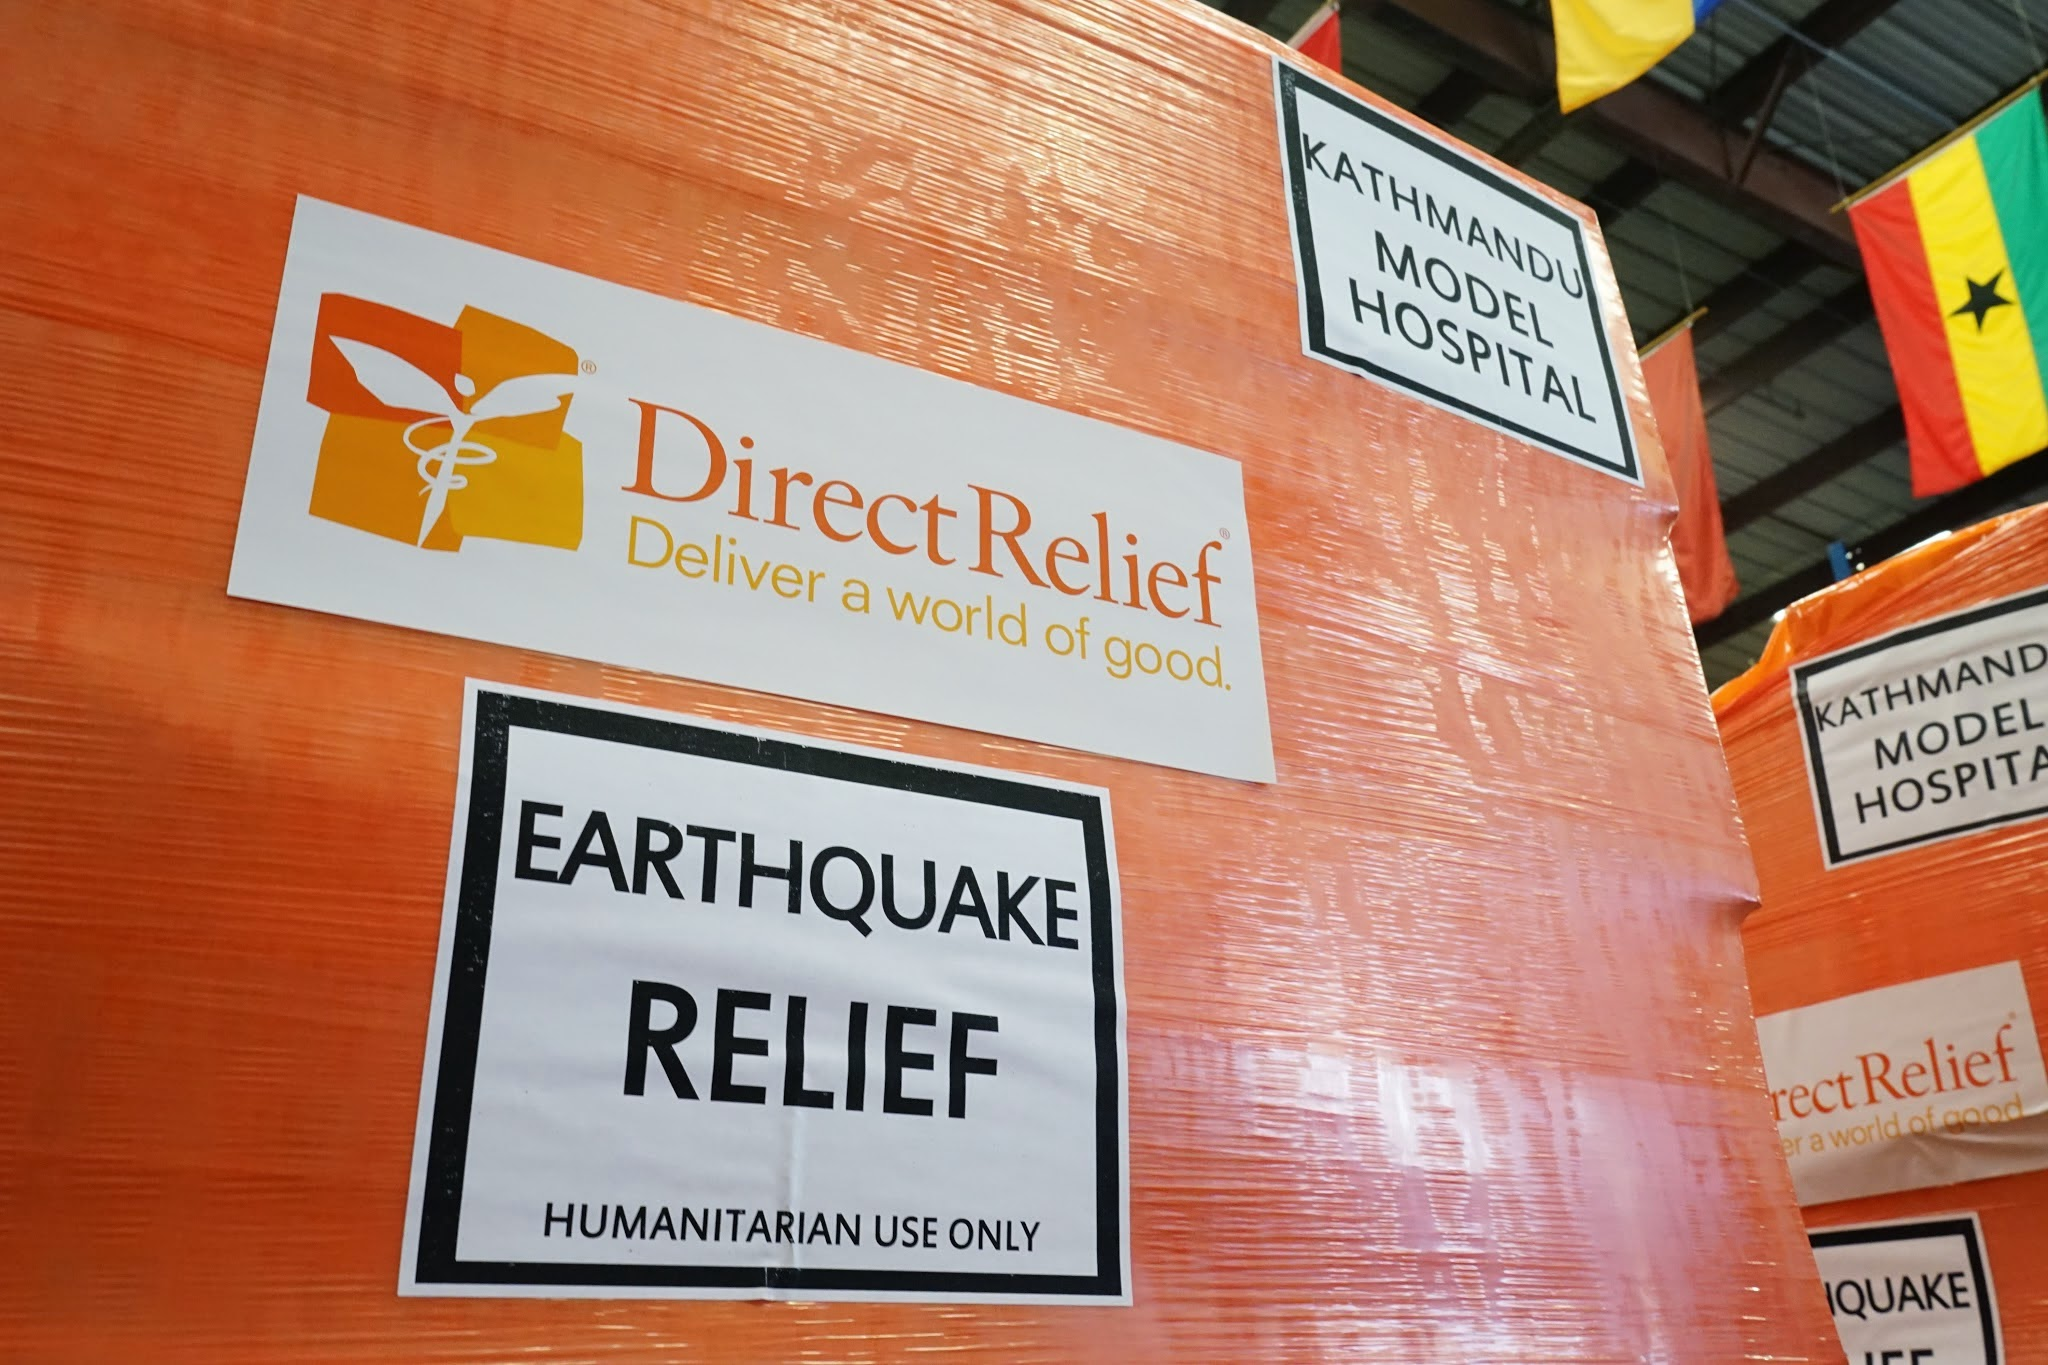 Nepal Earthquake Medical Relief Supplies